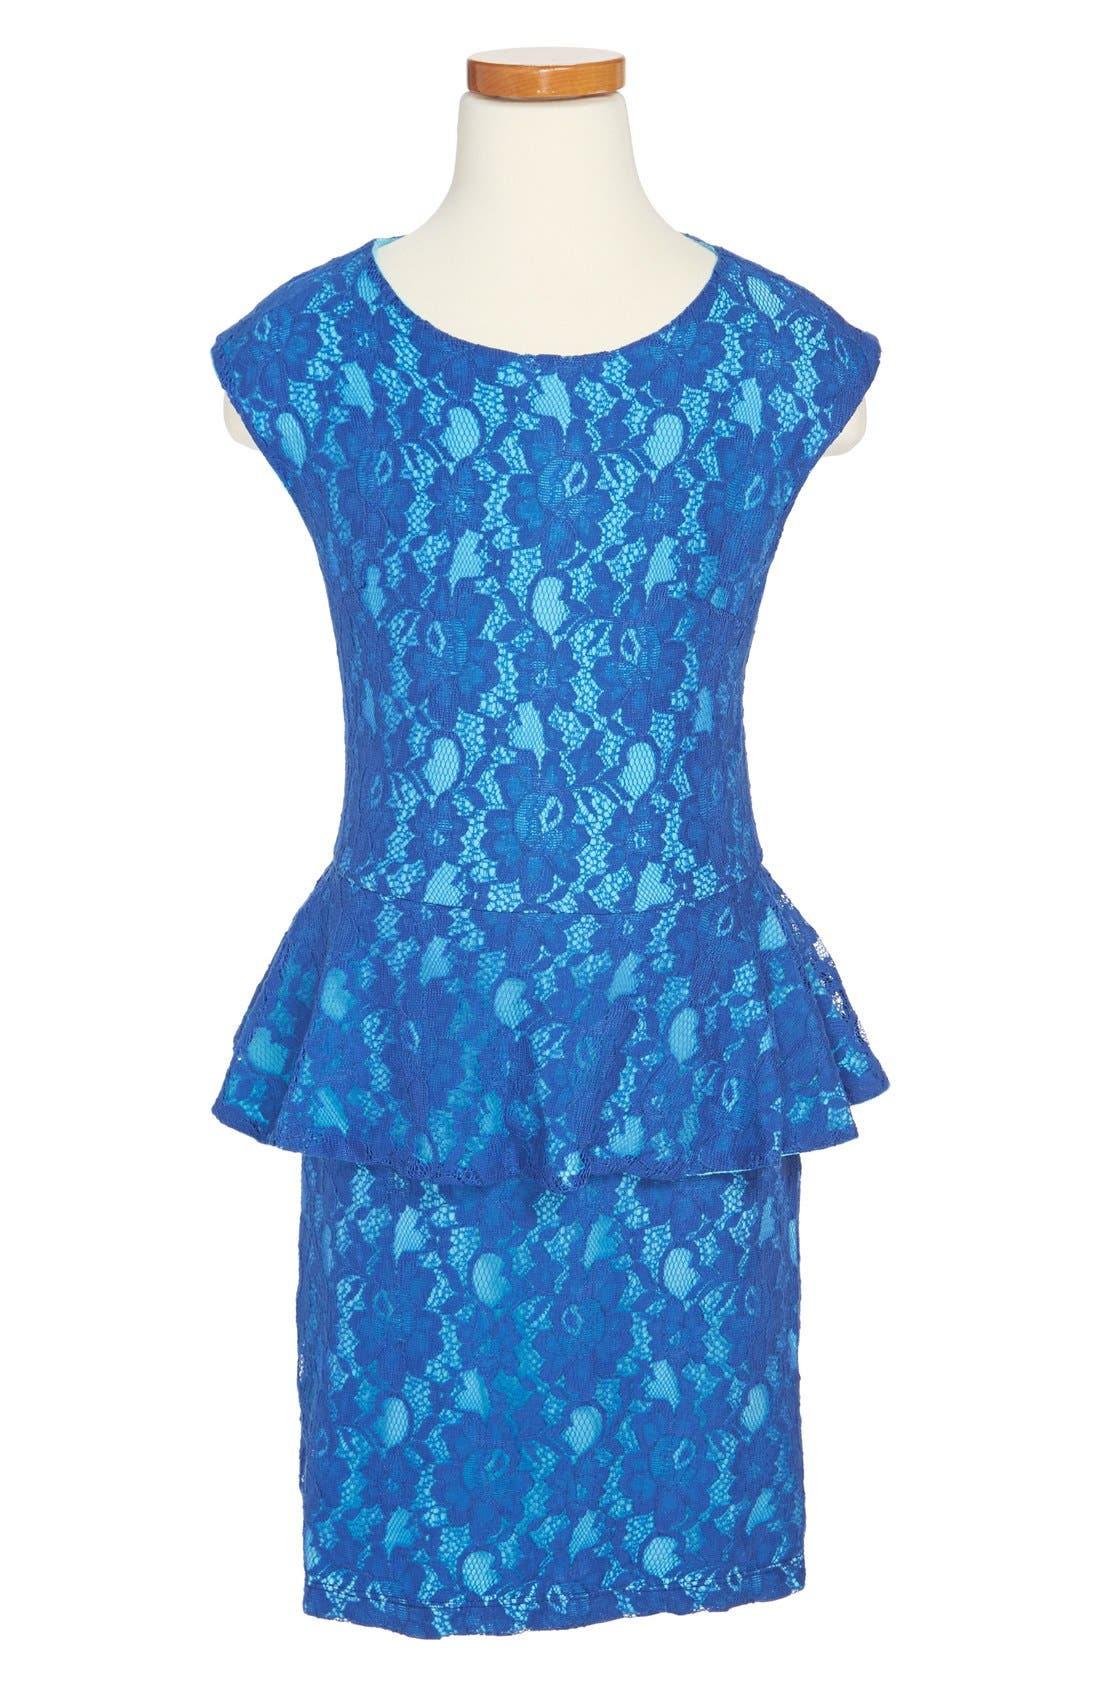 Alternate Image 1 Selected - Miss Behave 'Piper' Peplum Lace Dress (Big Girls)